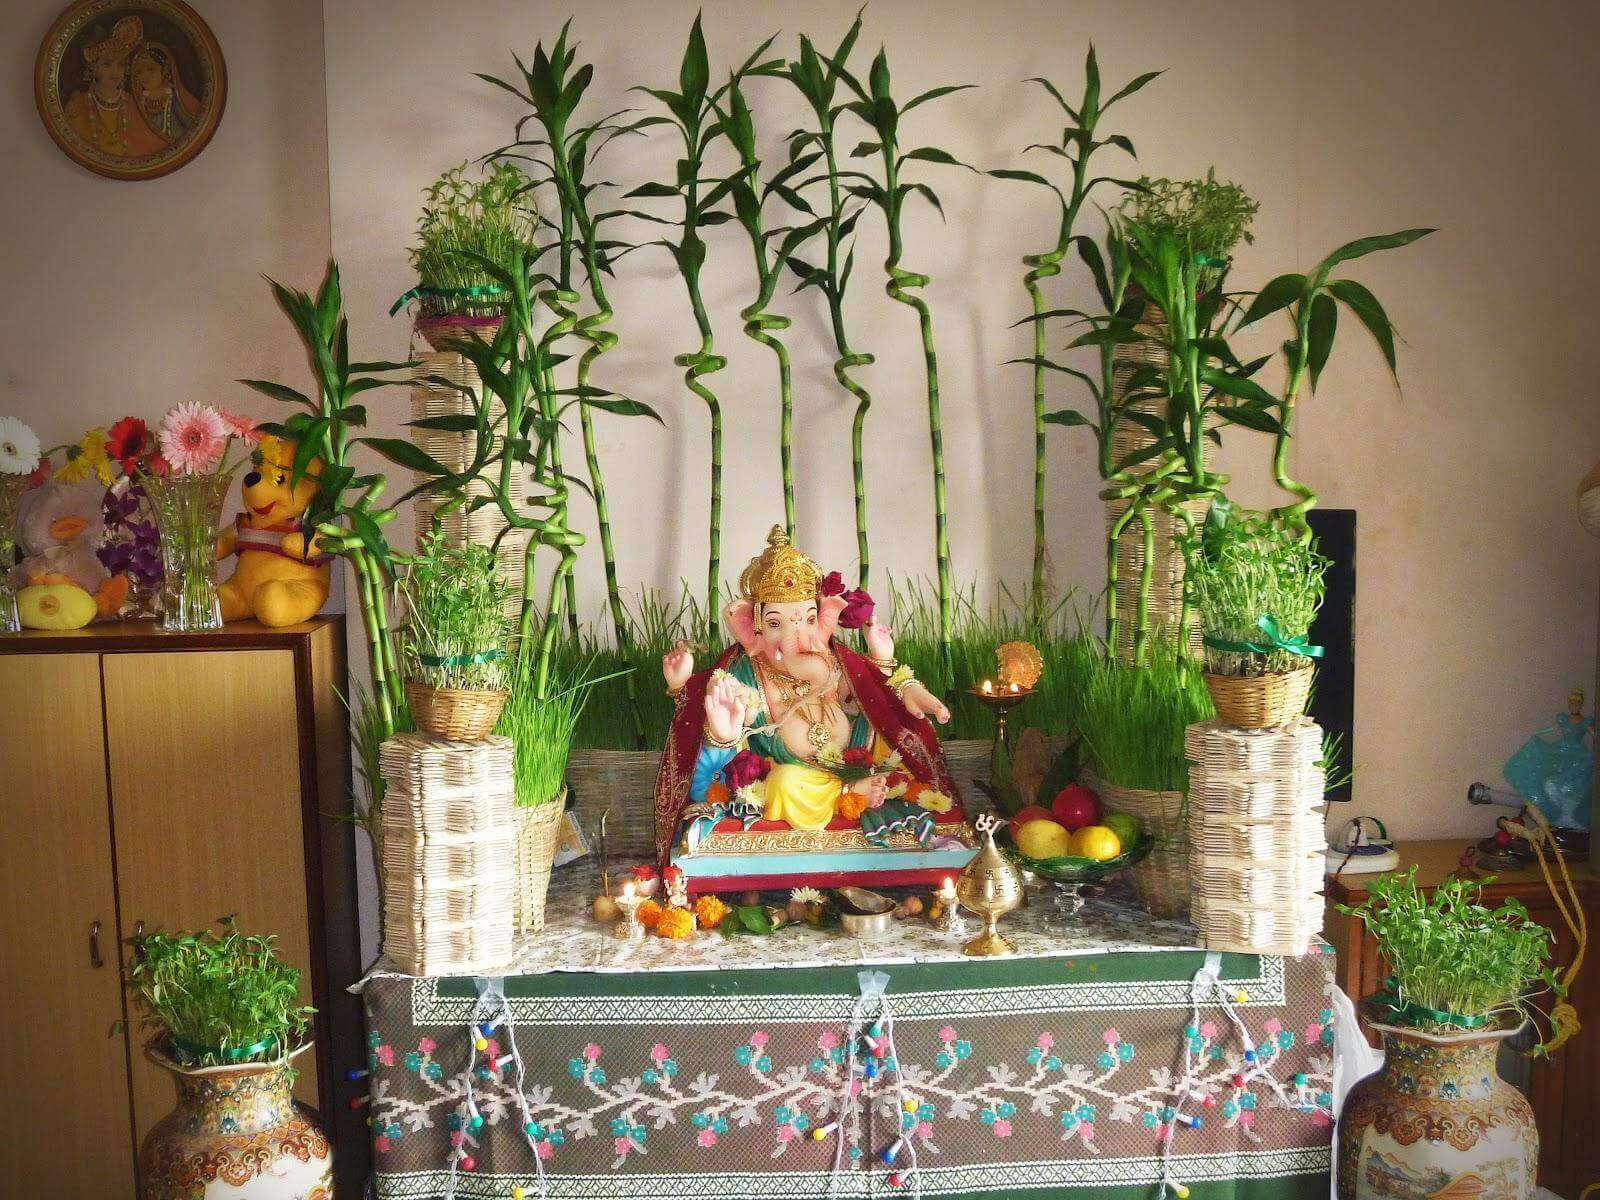 Ganpati Decoration Work